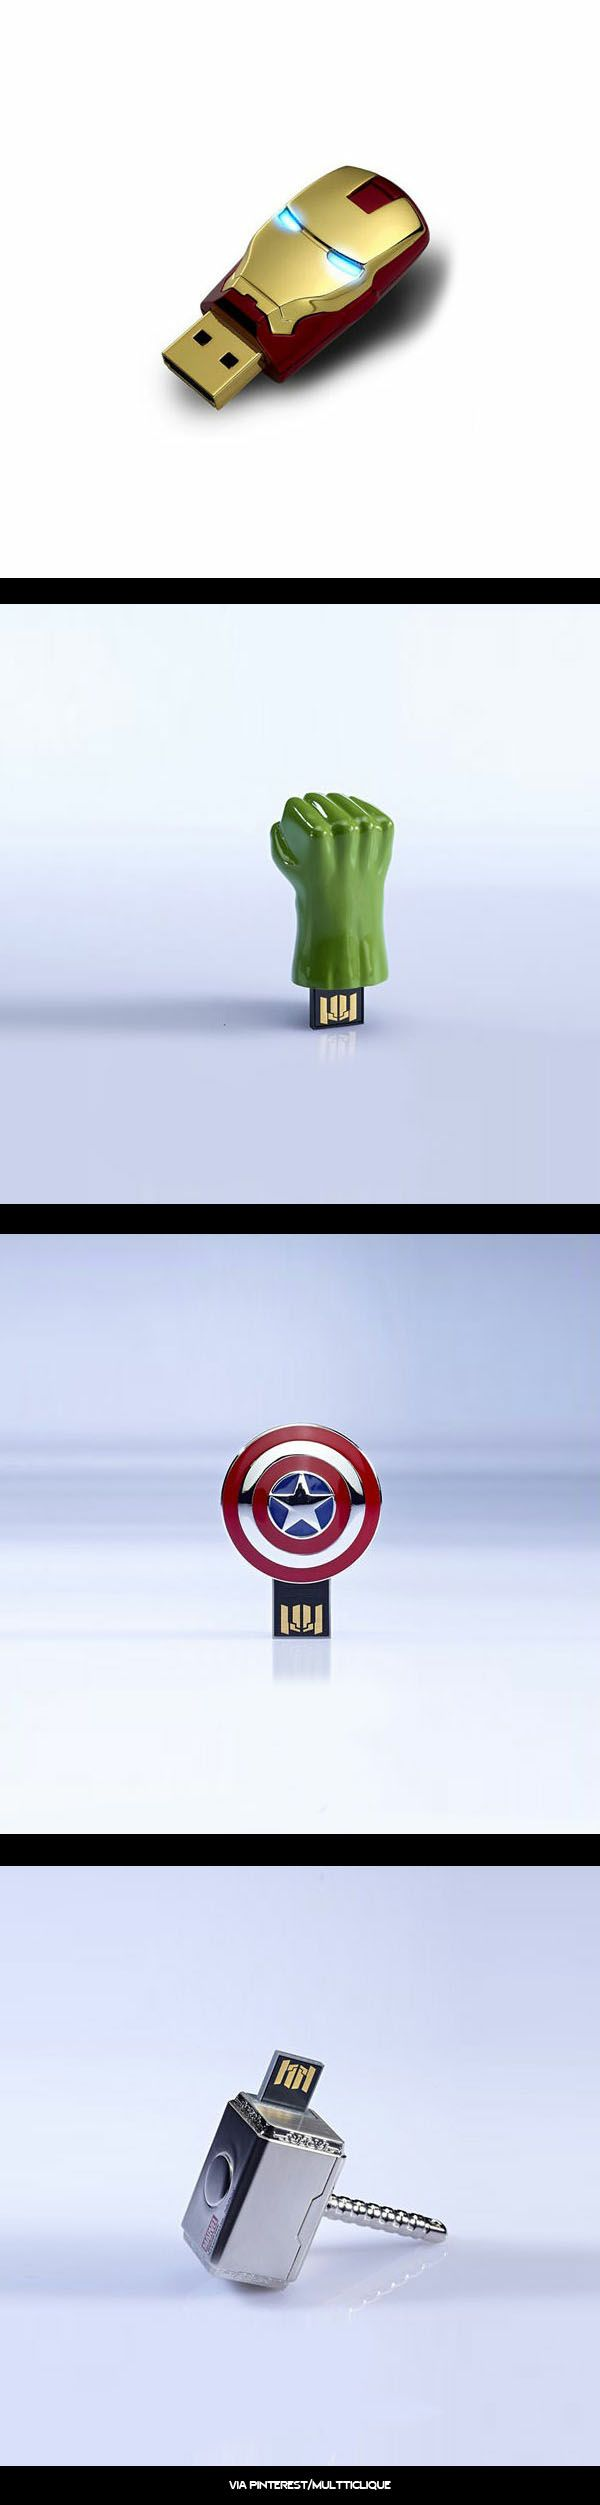 Avengers #tecnology #heroes #musthave